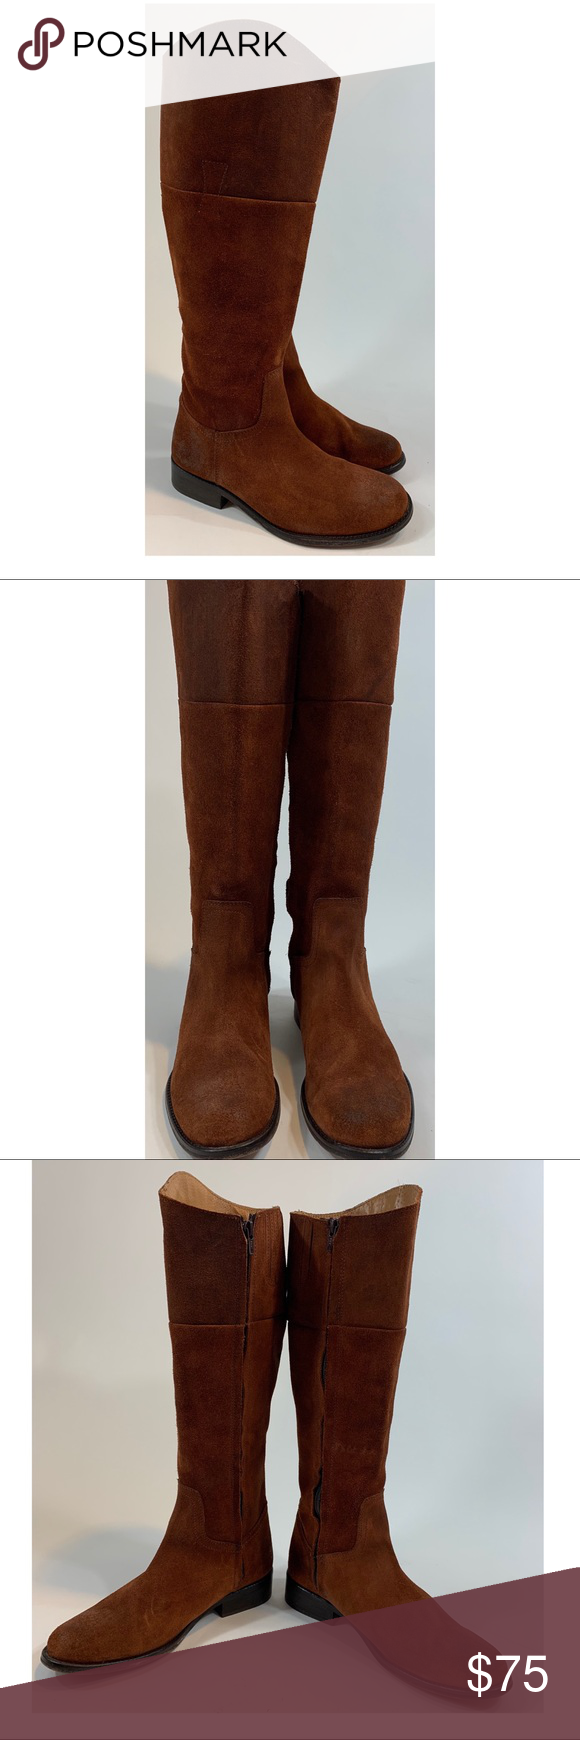 83c0099f197 Steven Steve Madden Reins size 8.5 tall suede These are a gently used pair  of Steven